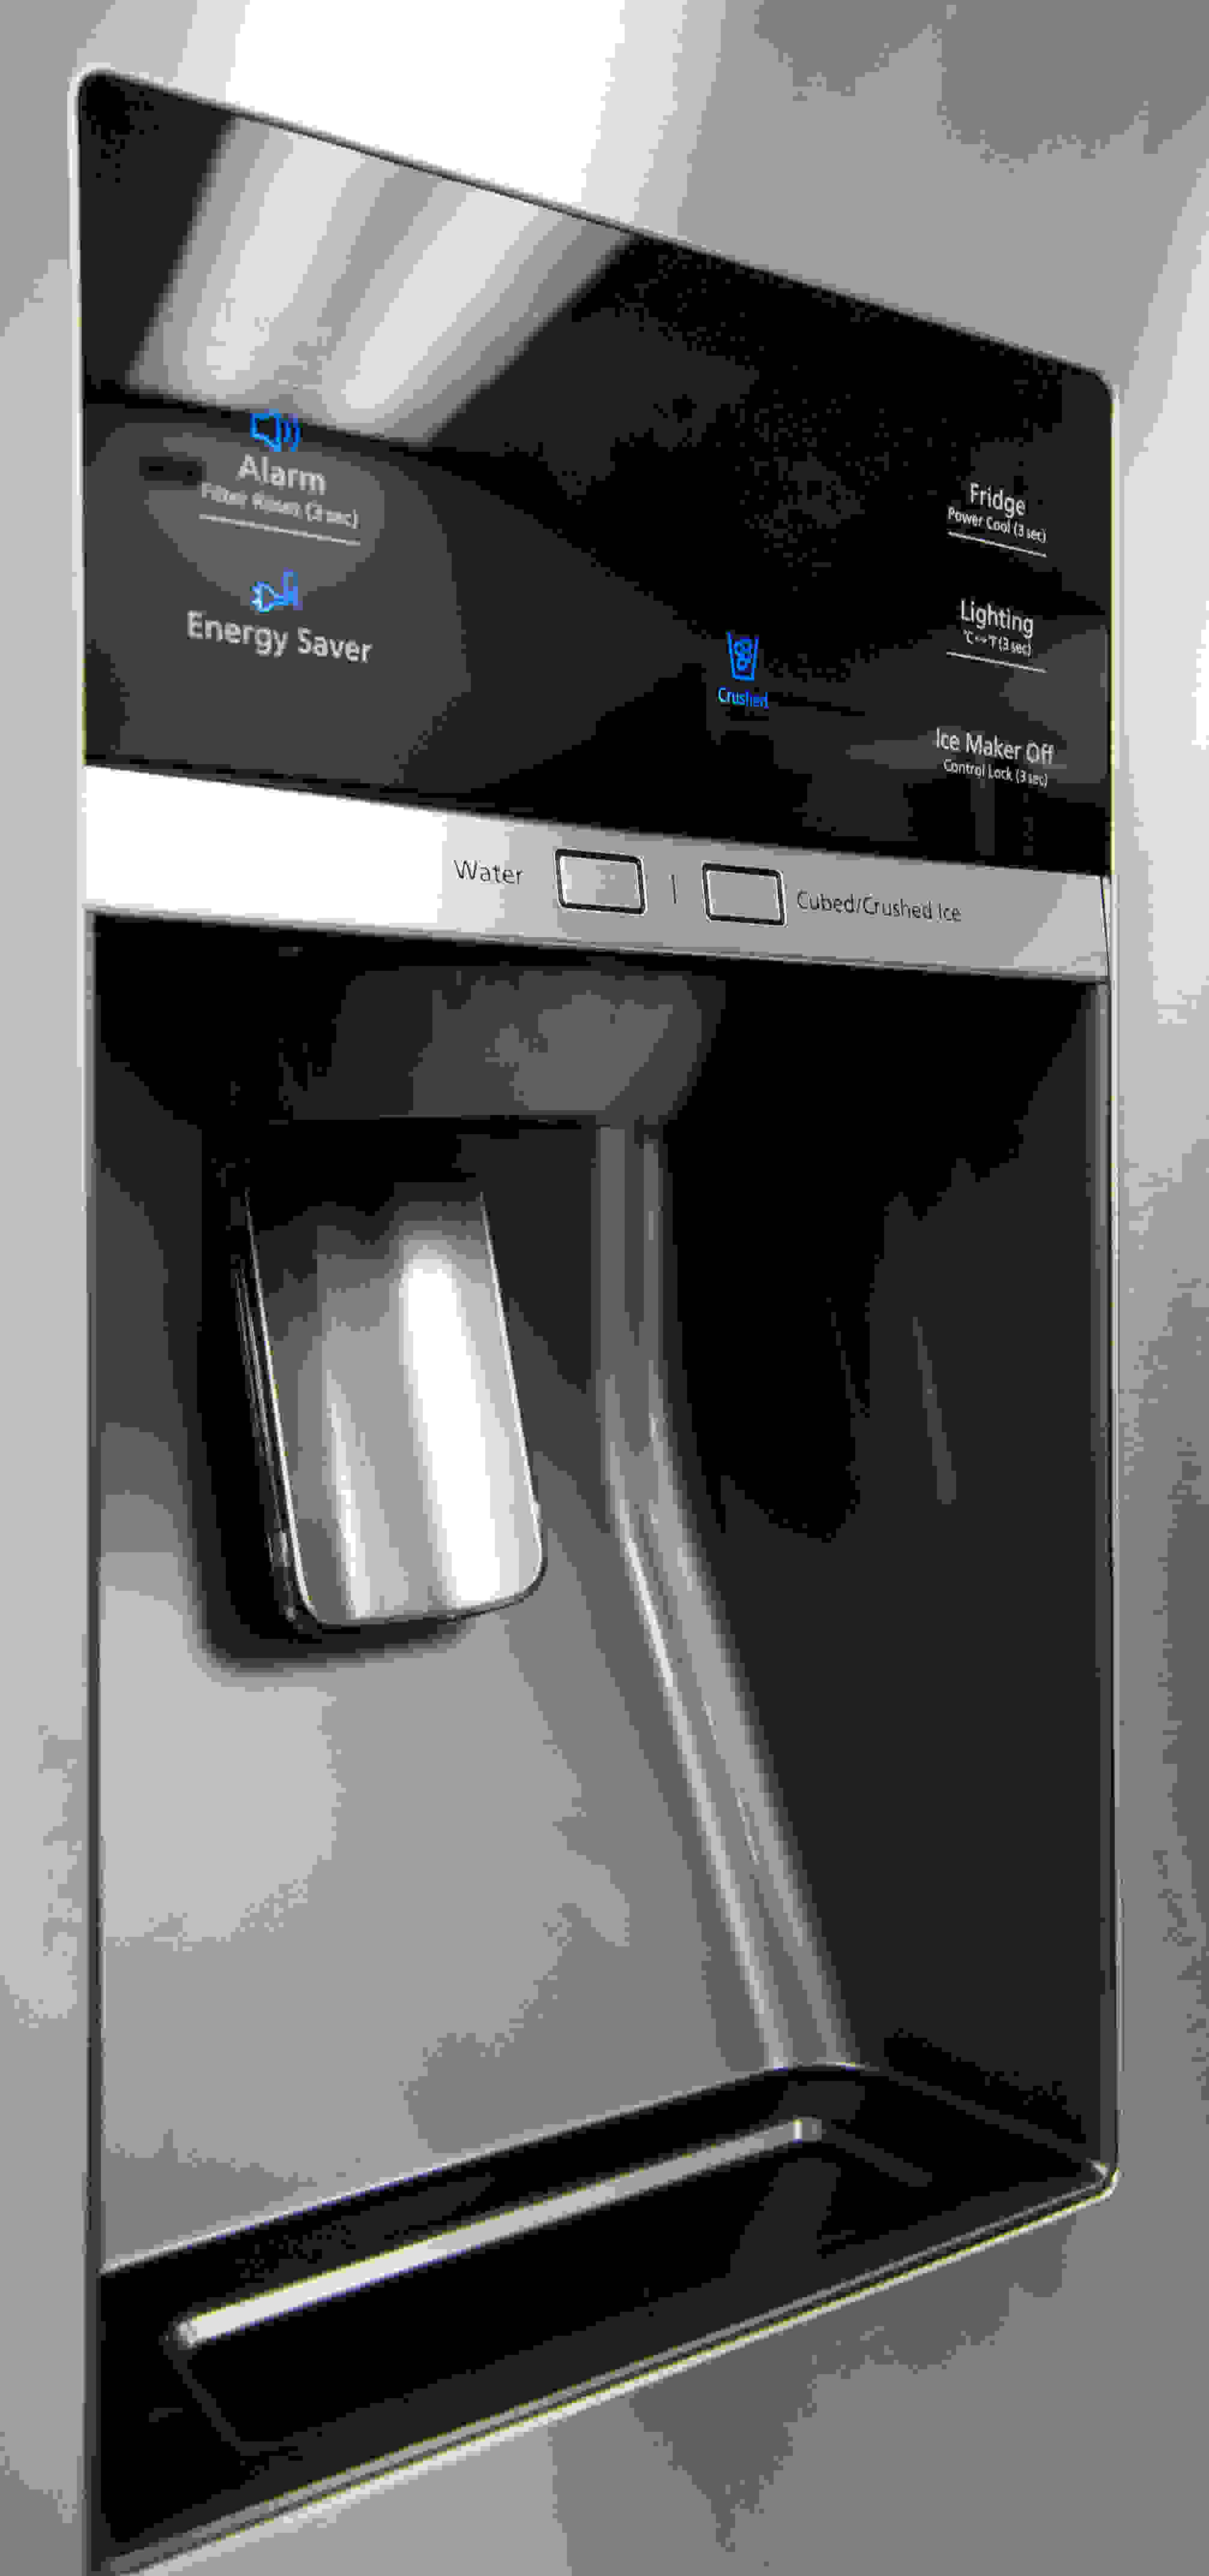 The Samsung RF28HMEDBSR's stylish dispenser has plenty of room for both regular drinking glasses and wider pitchers.